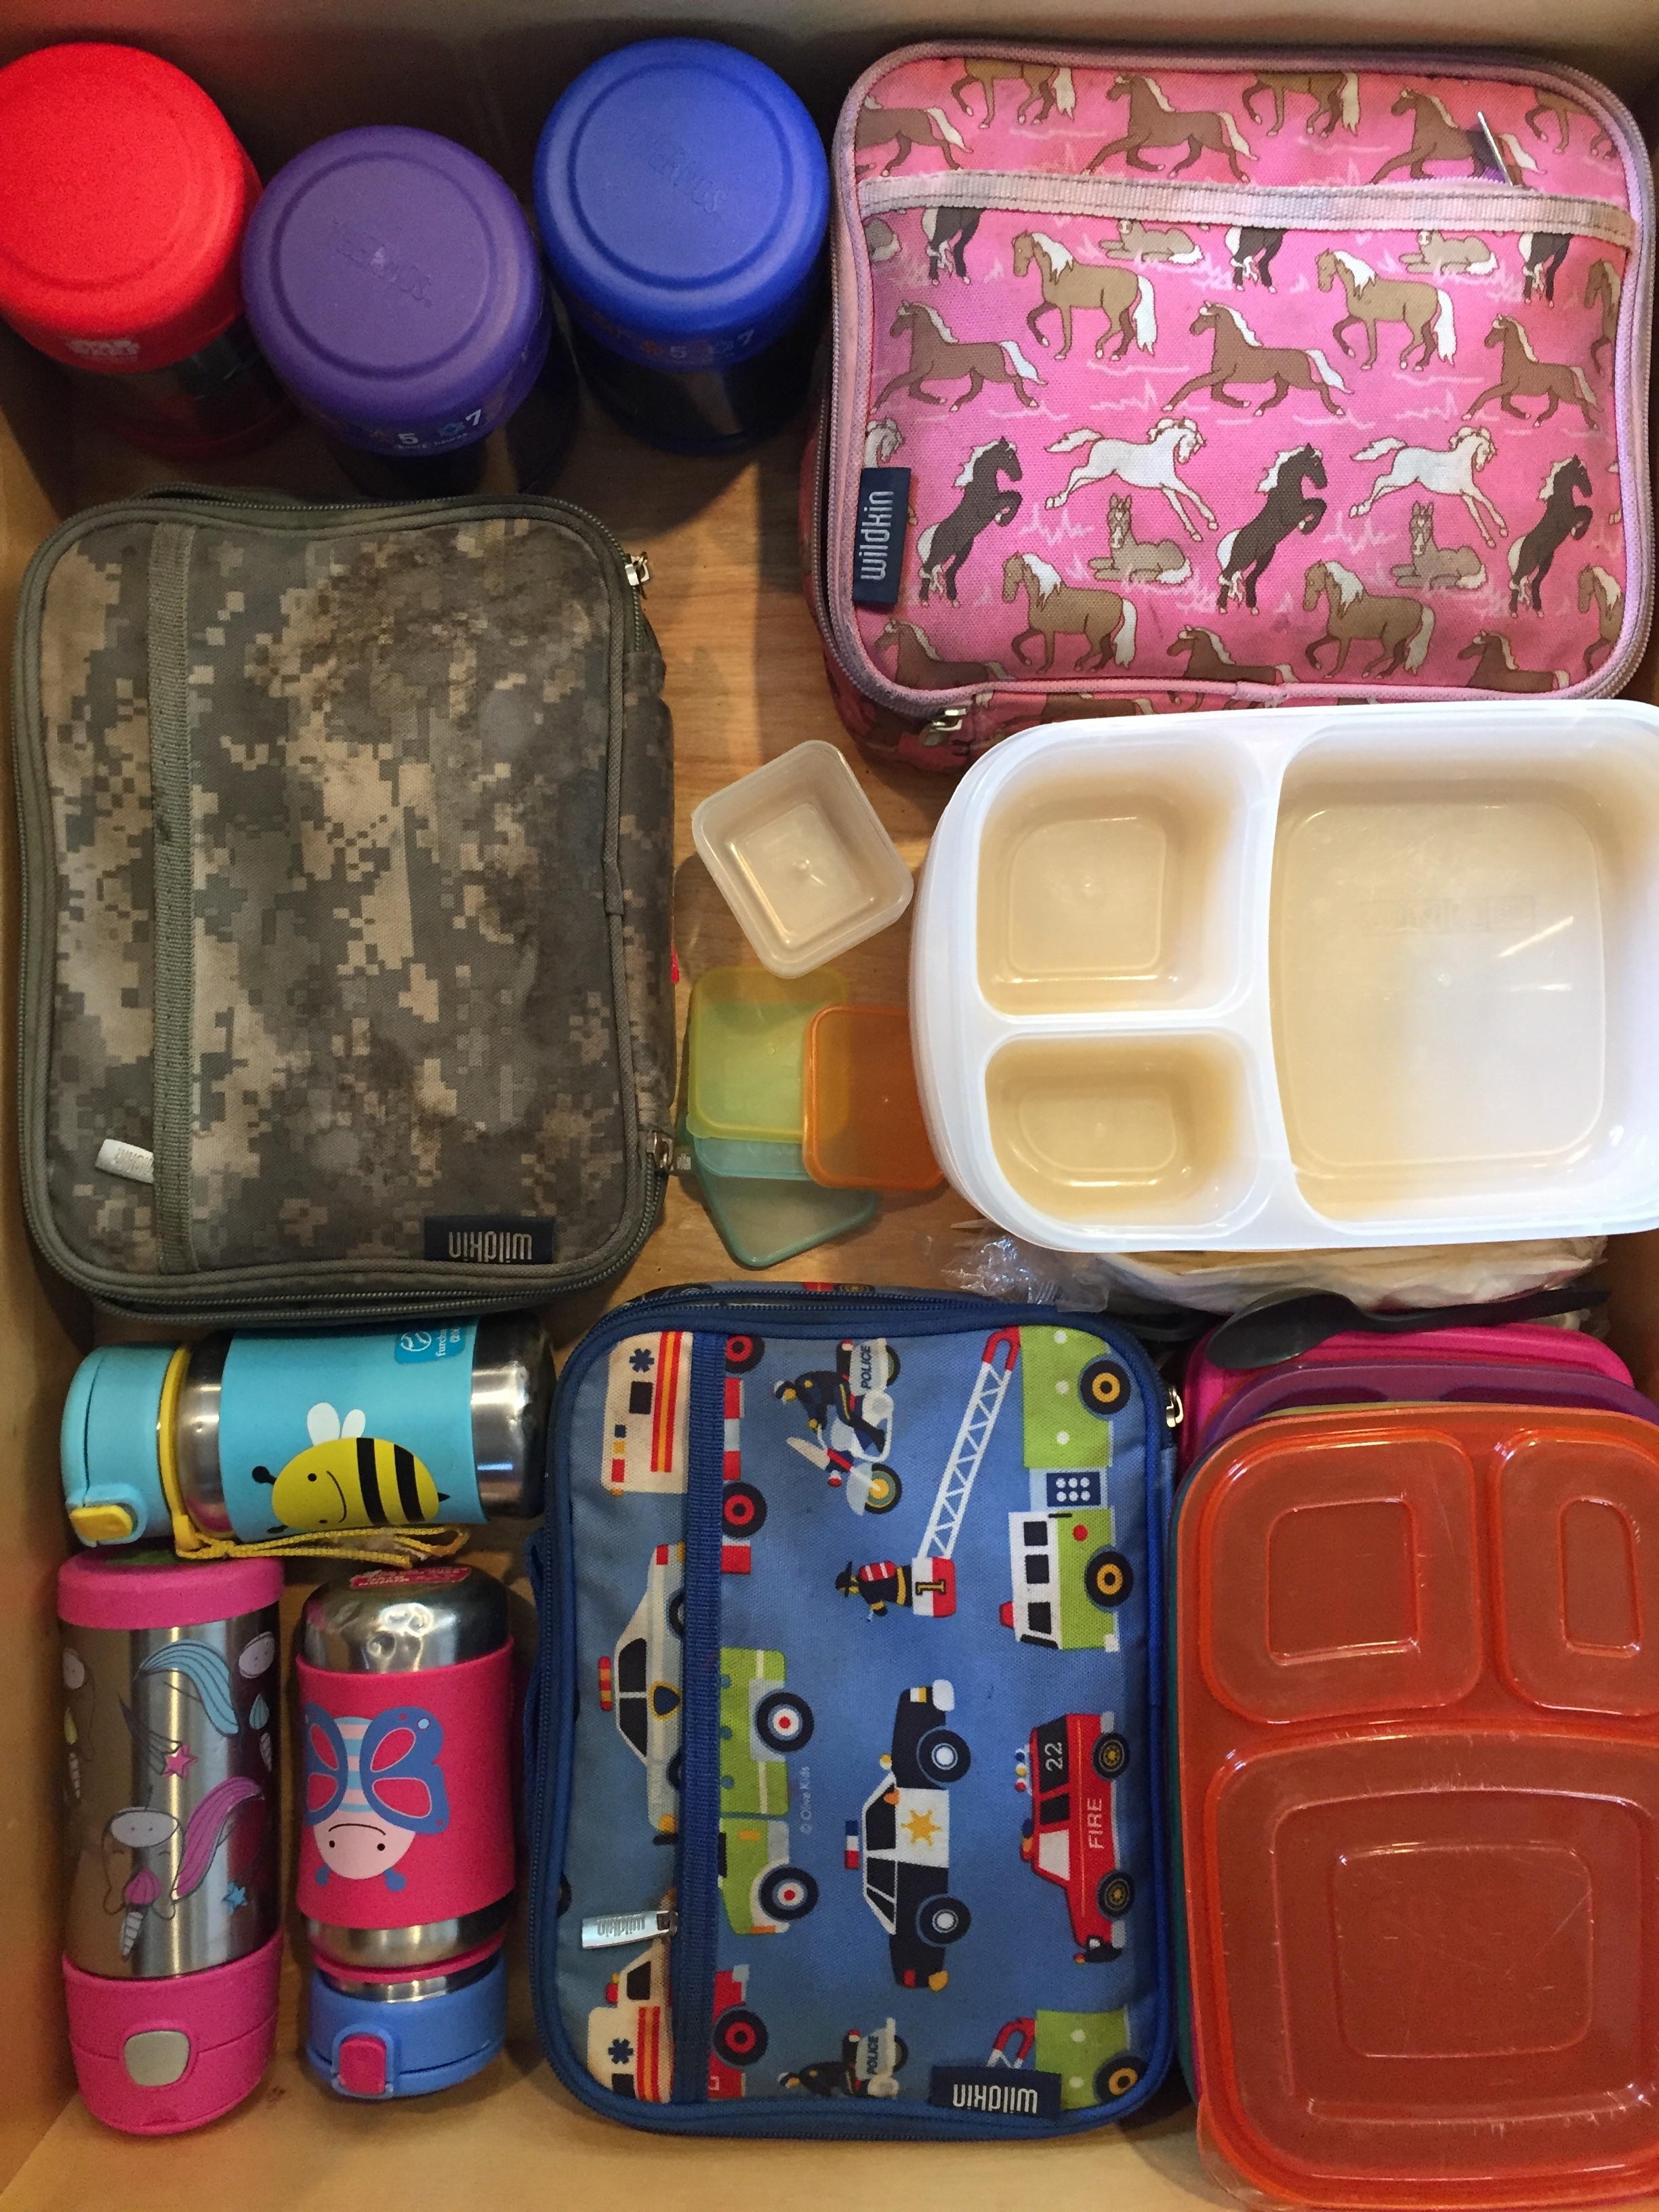 packing lunch for kids wildkins lunch boxes Thermos insulated food jars Skip Hop water bottles Thermos insulated water bottle easy lunchboxes mini dippers